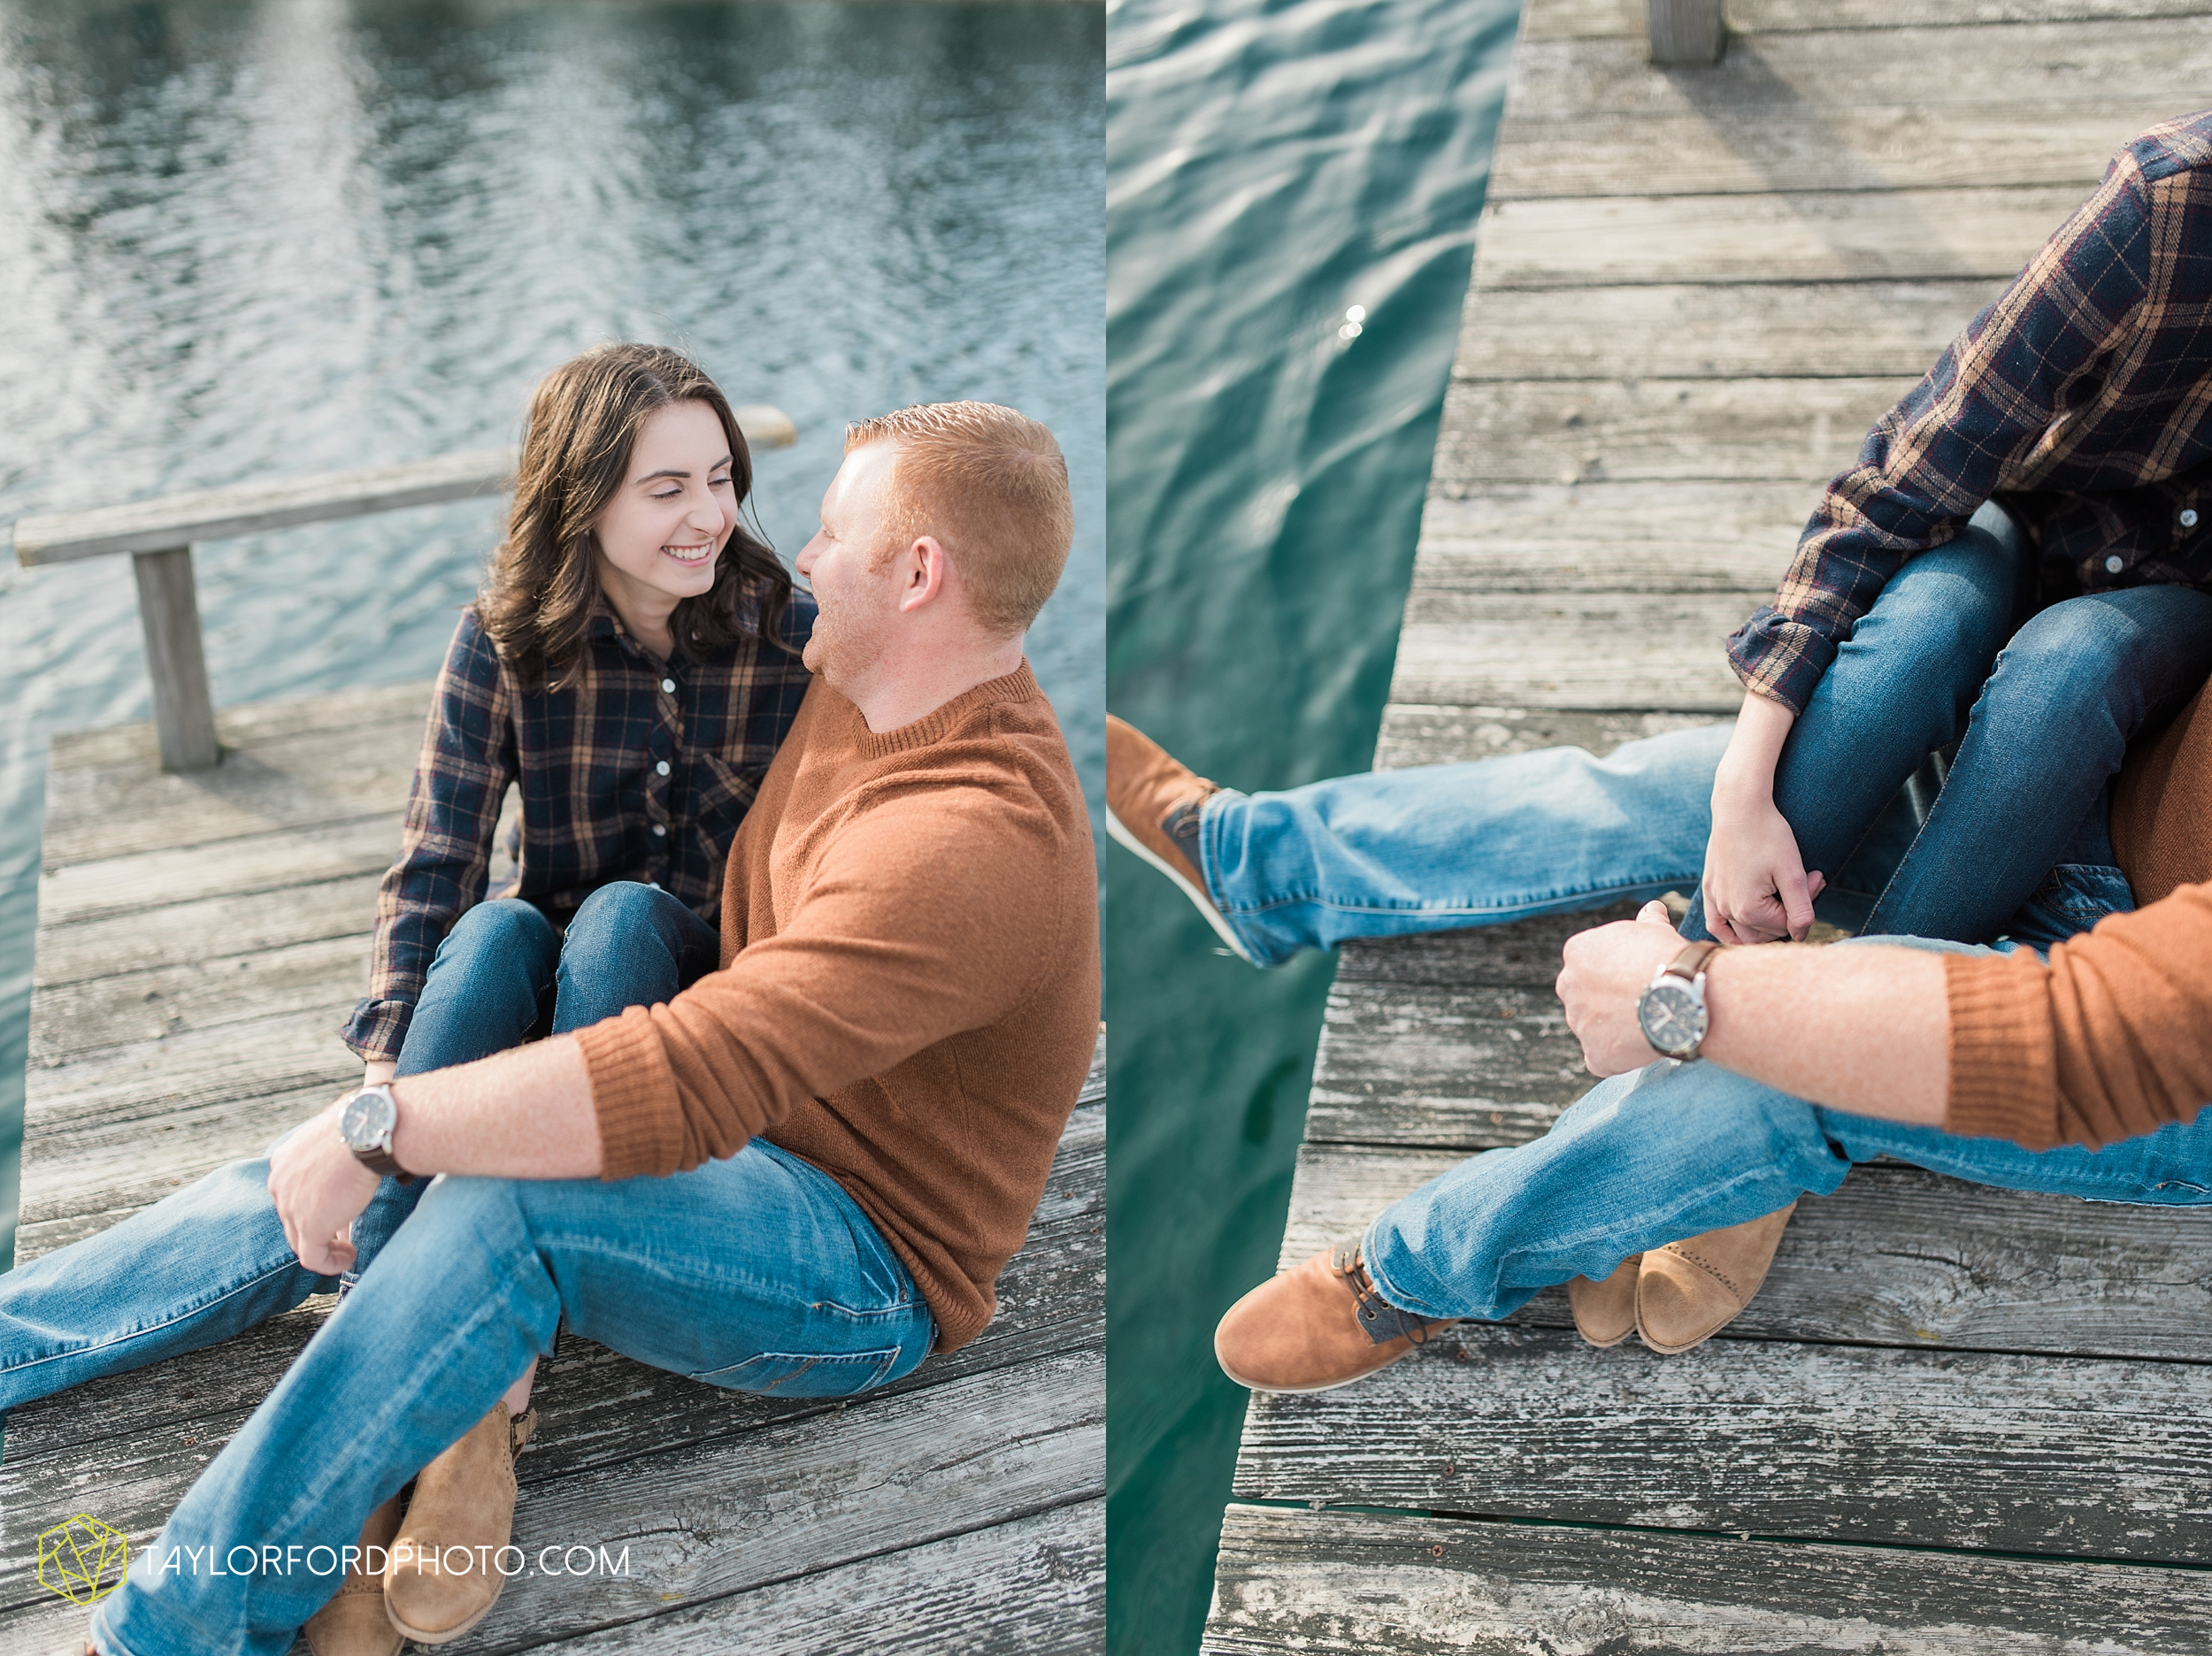 van-wert-ohio-engagement-photography-farm-life-photographer-Taylor-Ford-Photography_4522.jpg